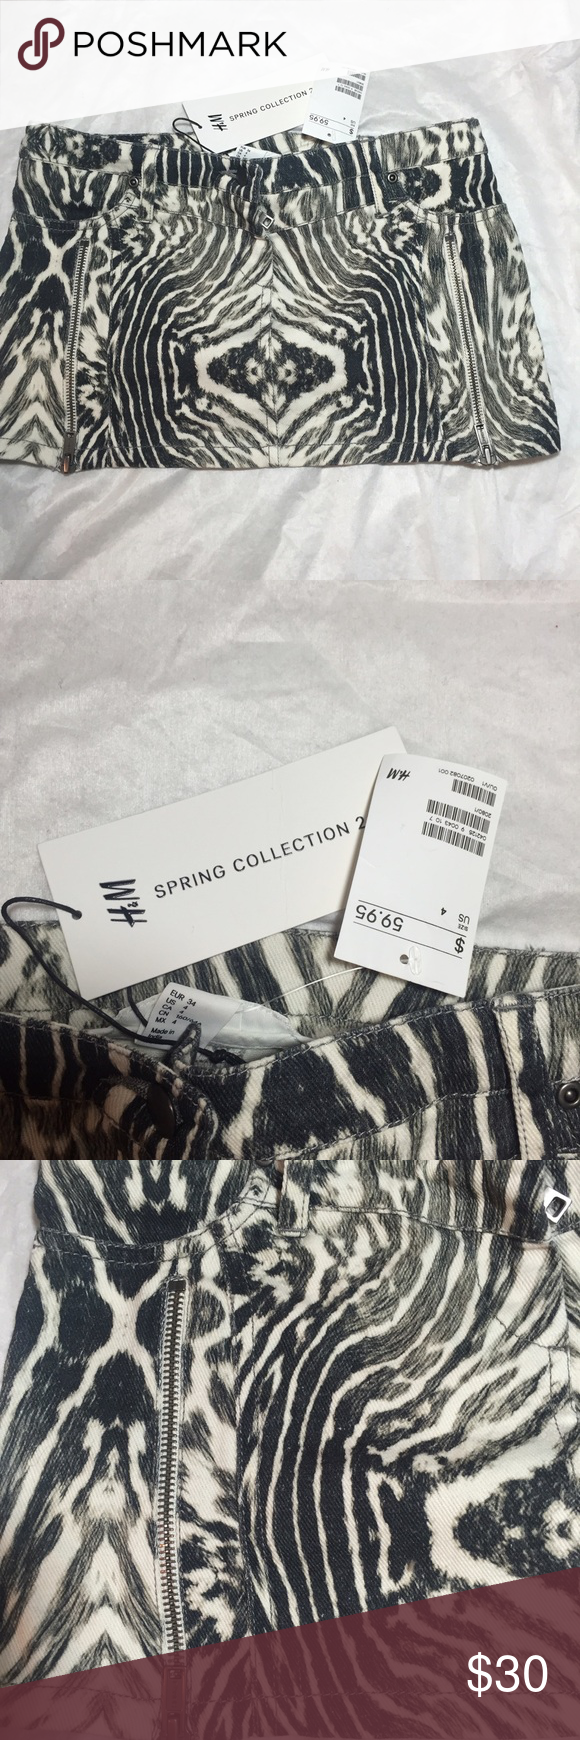 H&M Spring Collection B&W Animal Print Denim Skirt This is a NWT H&M printed denim skirt from the spring collection and it is a flawless piece! It has a zipper on each side that adds a nice subtle style flair perfect for anyone's style whether you are more simplistic or like to be the center or attention! H&M Skirts Mini